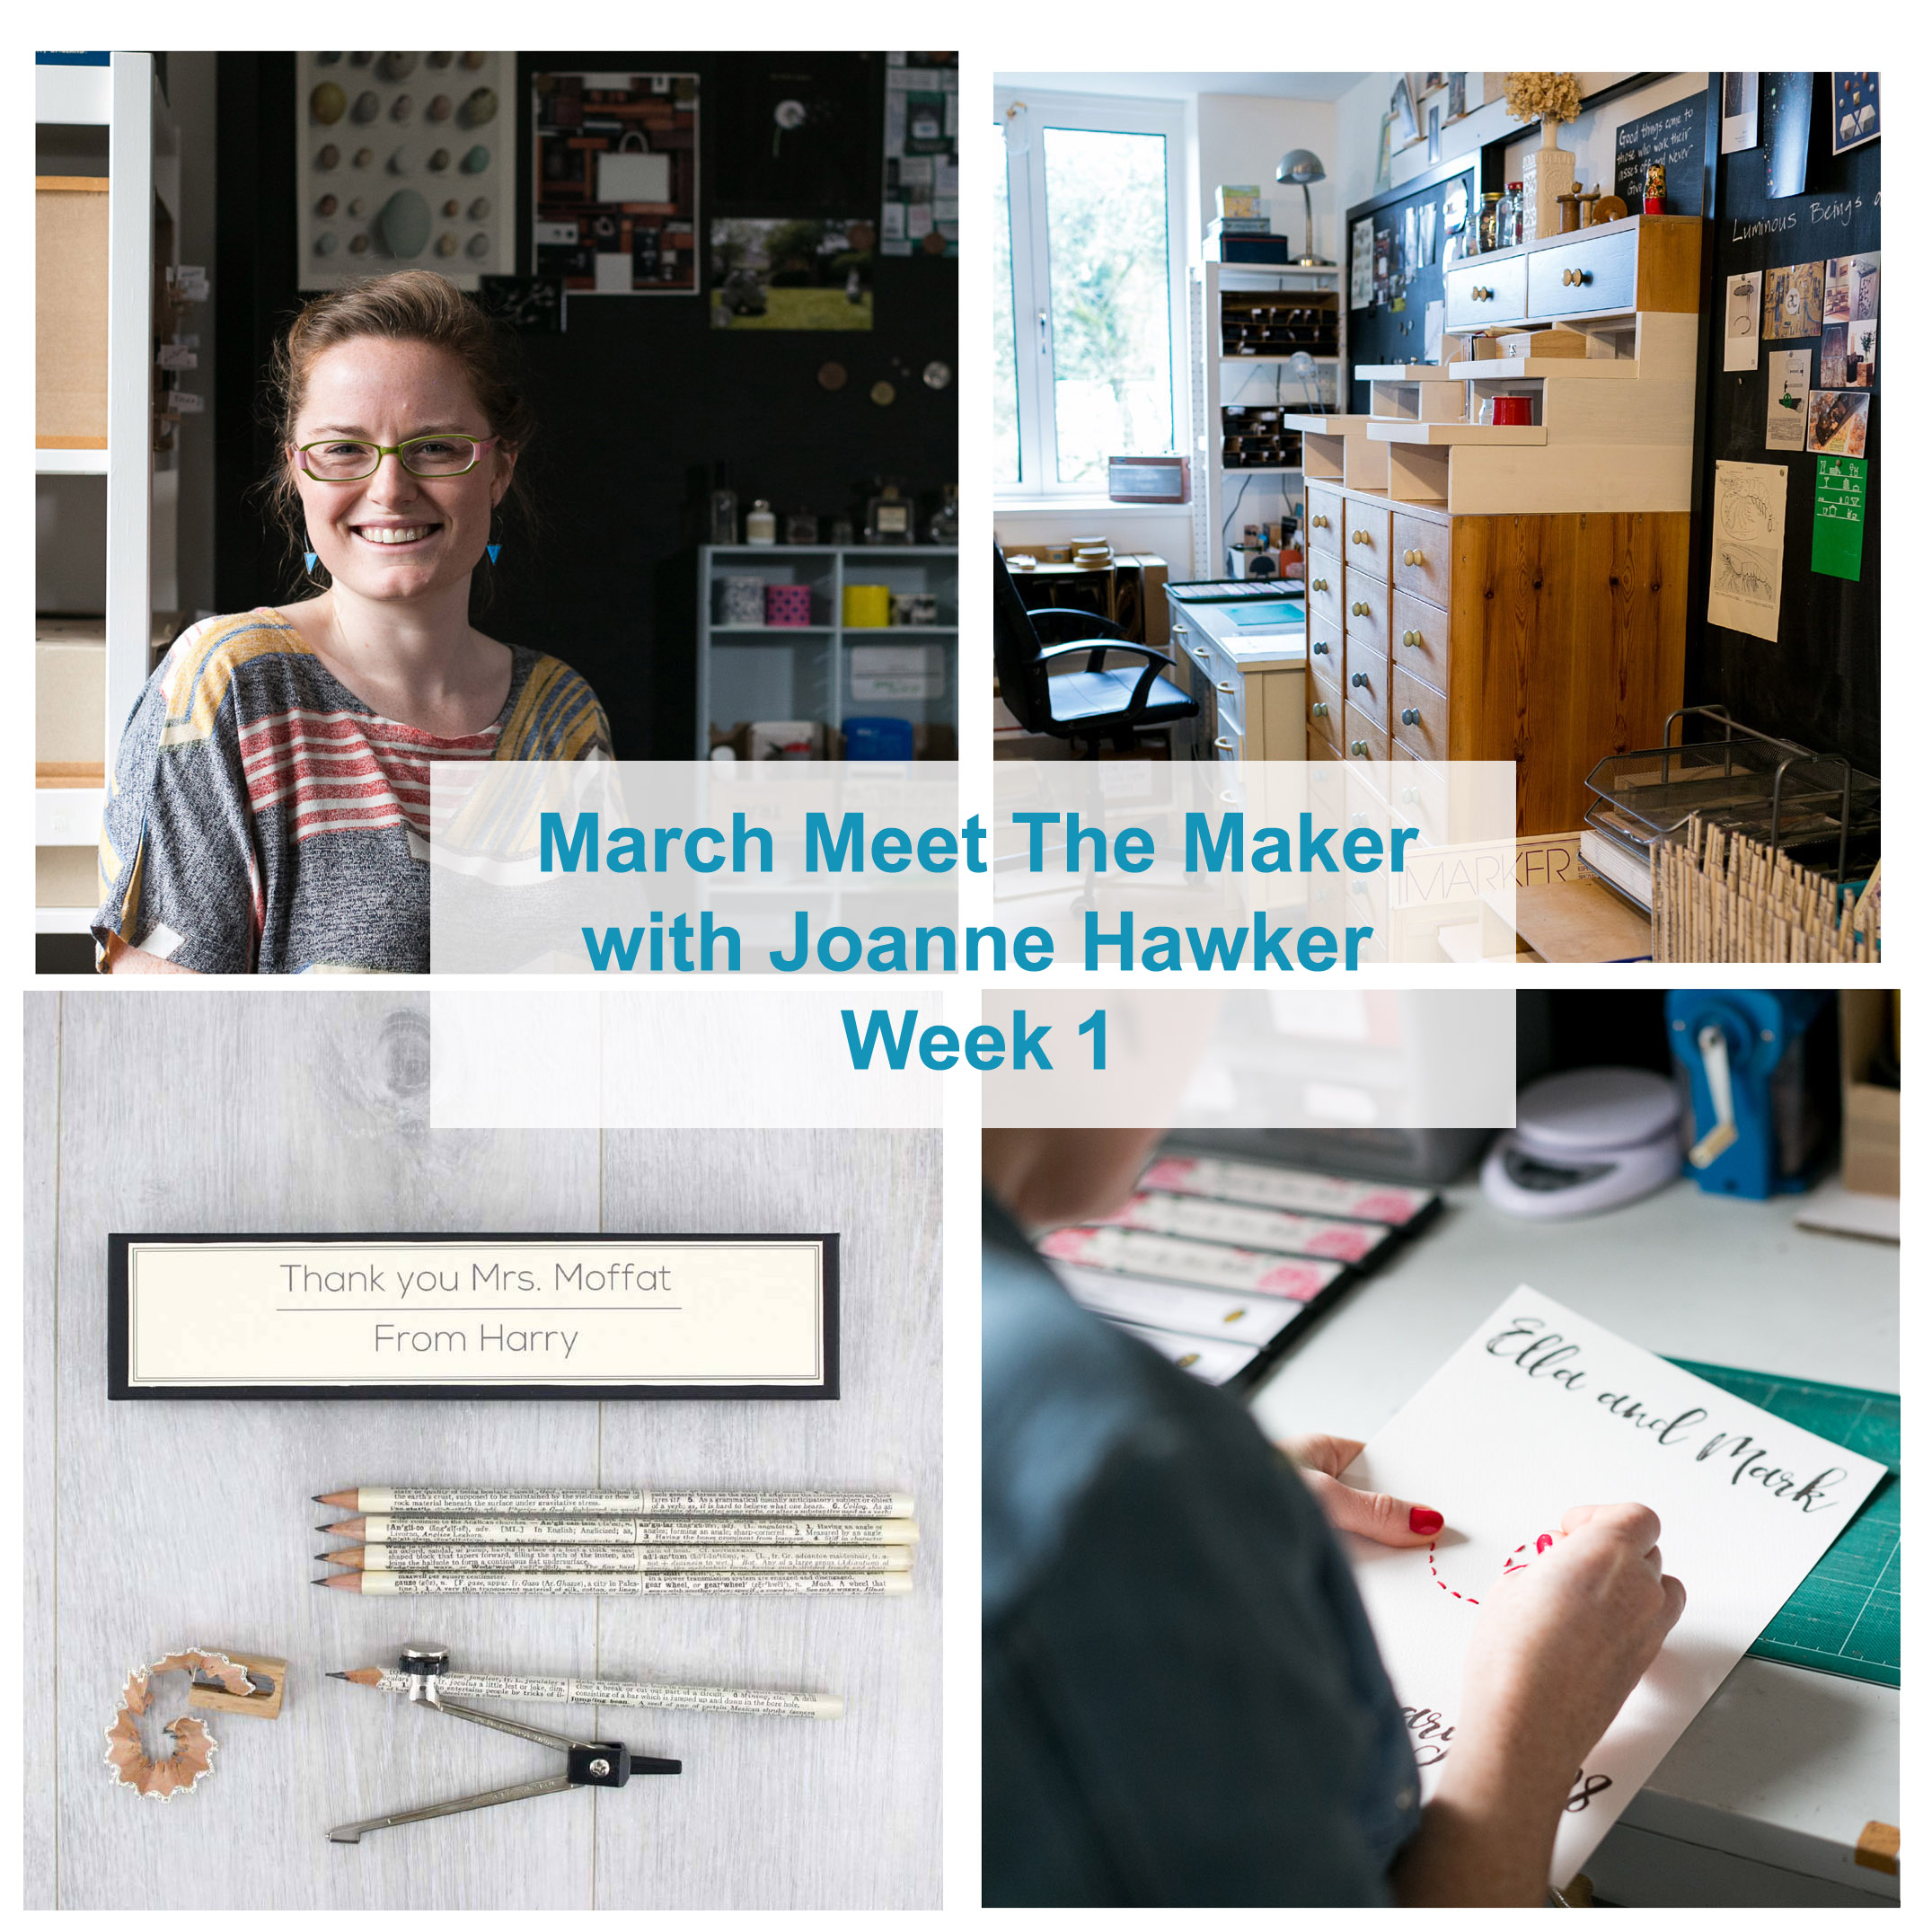 march meet the maker with joanne hawker week 1